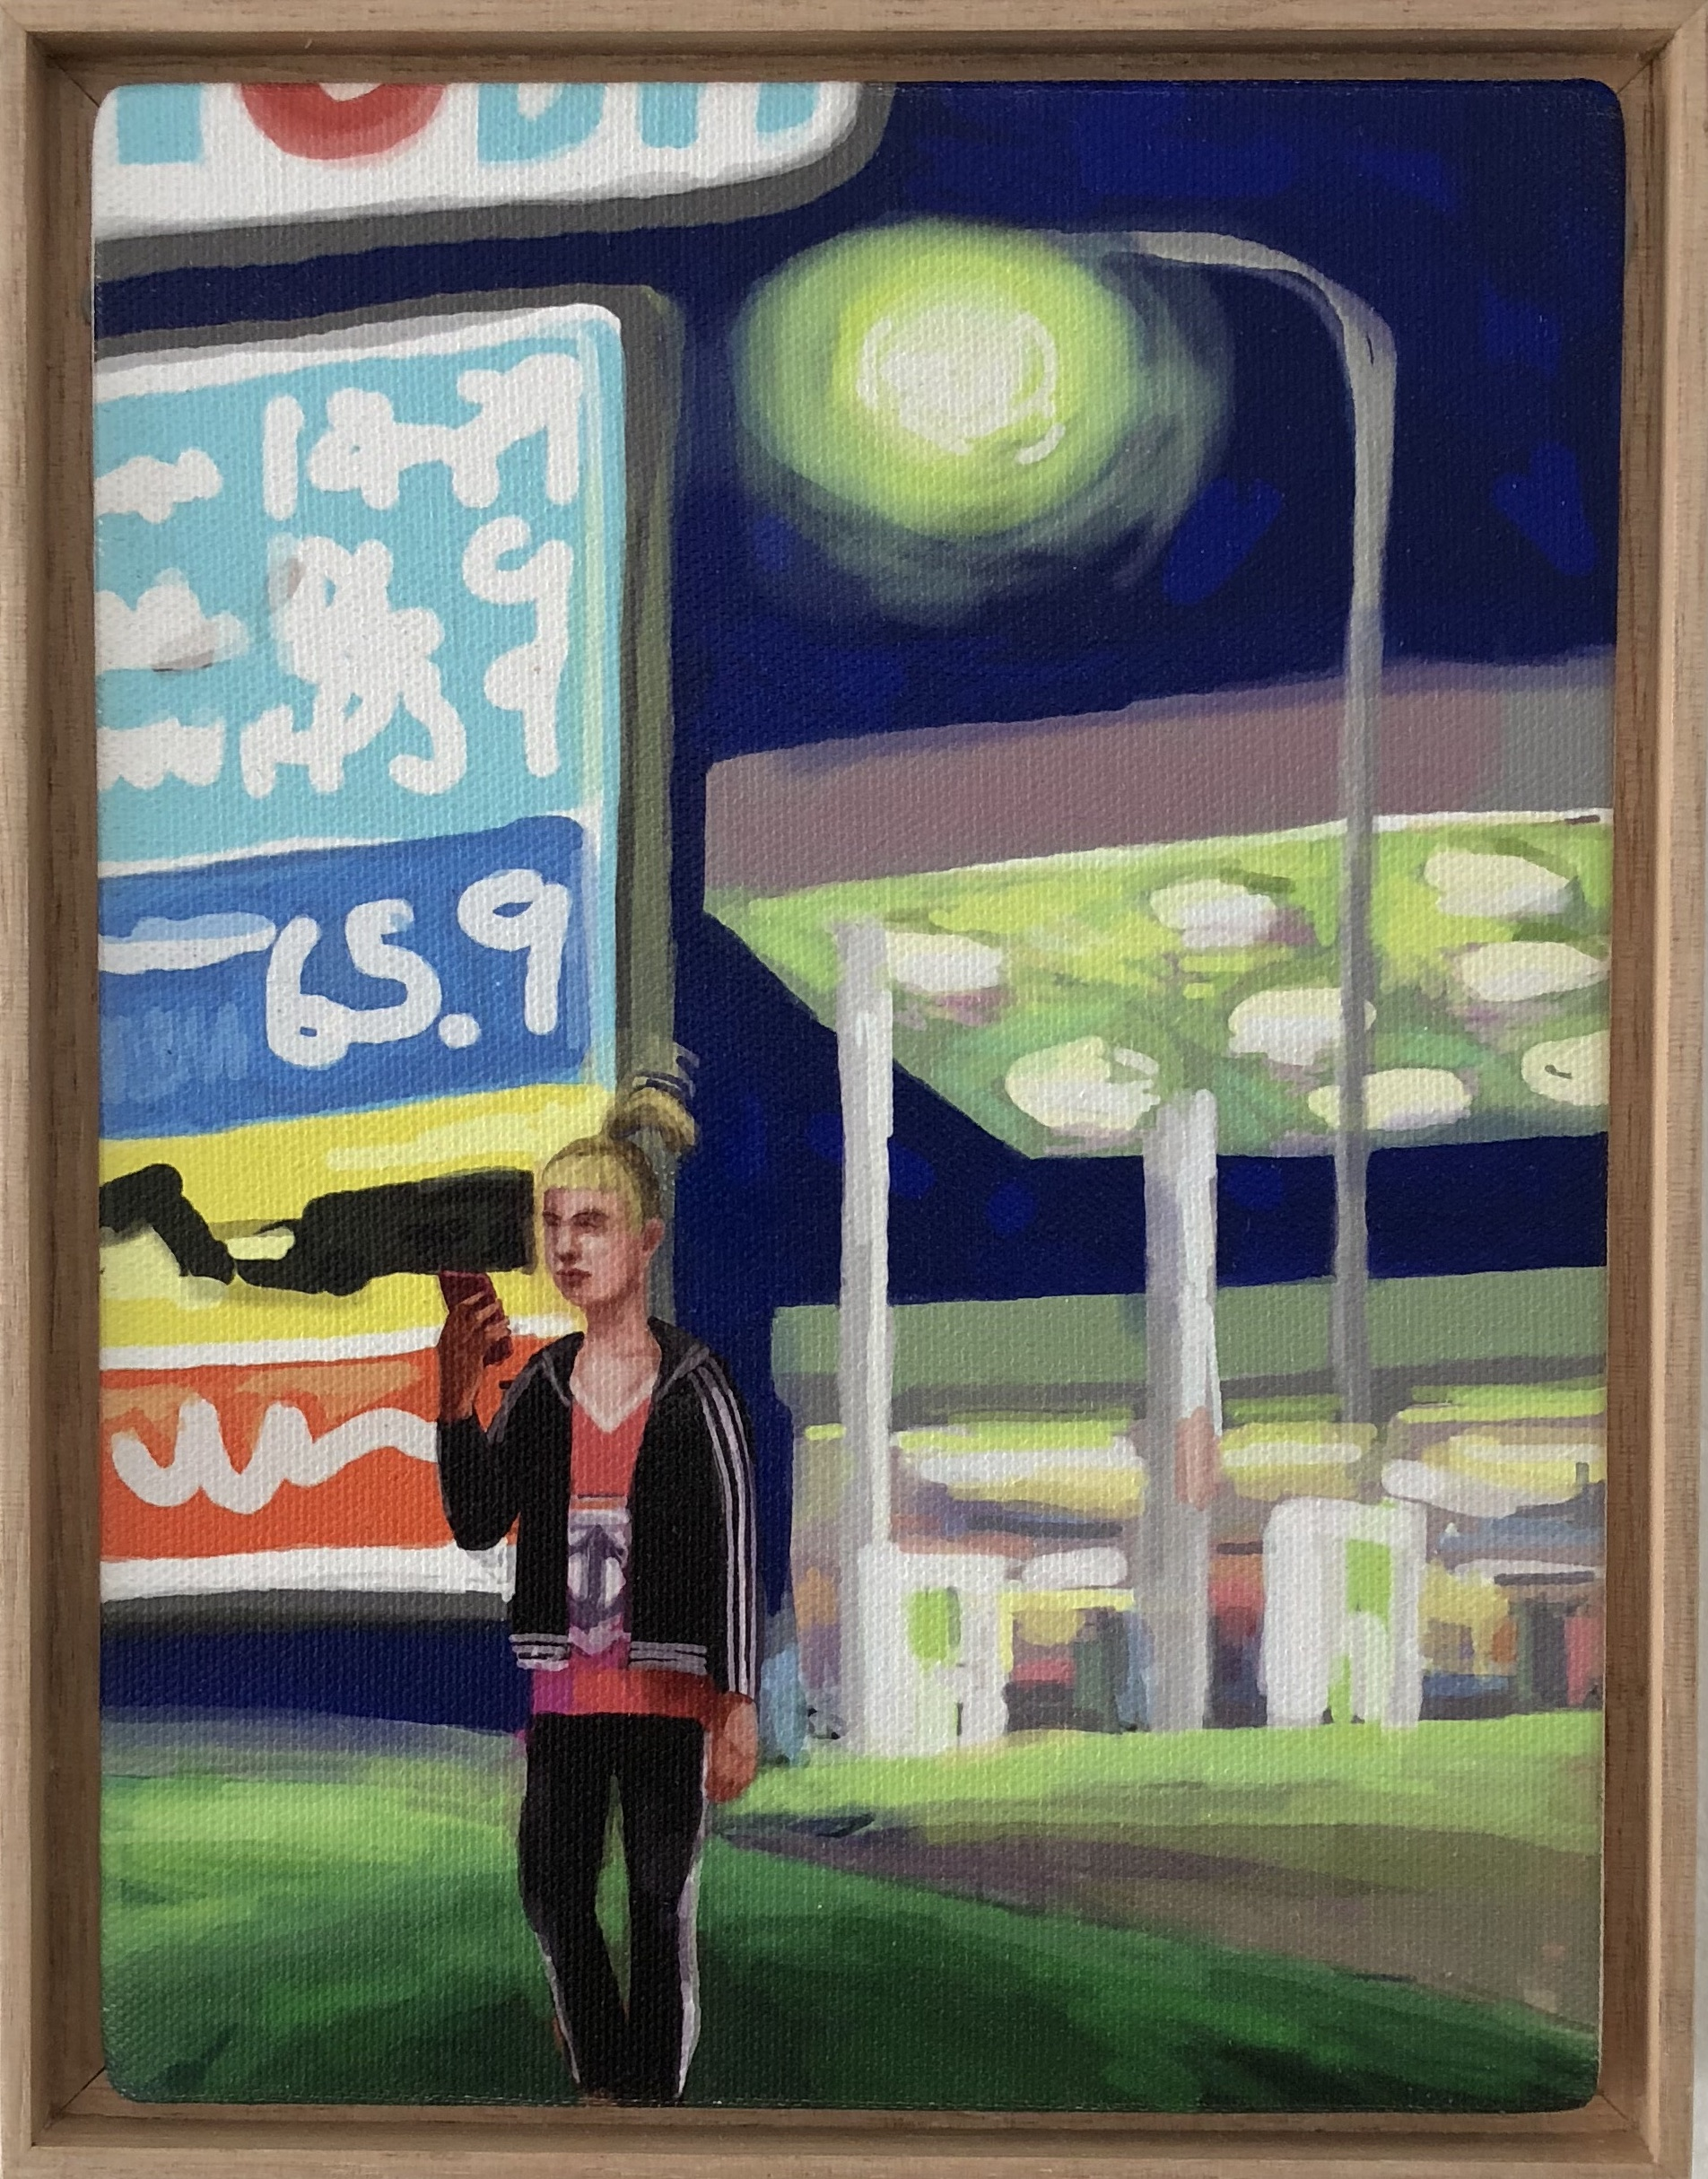 Peter Lankas  Servo hookup  2018 ipad drawing, archival print on canvas 23.5 x 18cm framed Artist Proof + edition of 10 $285.00 each (AP + 10 available)  edition includes framing